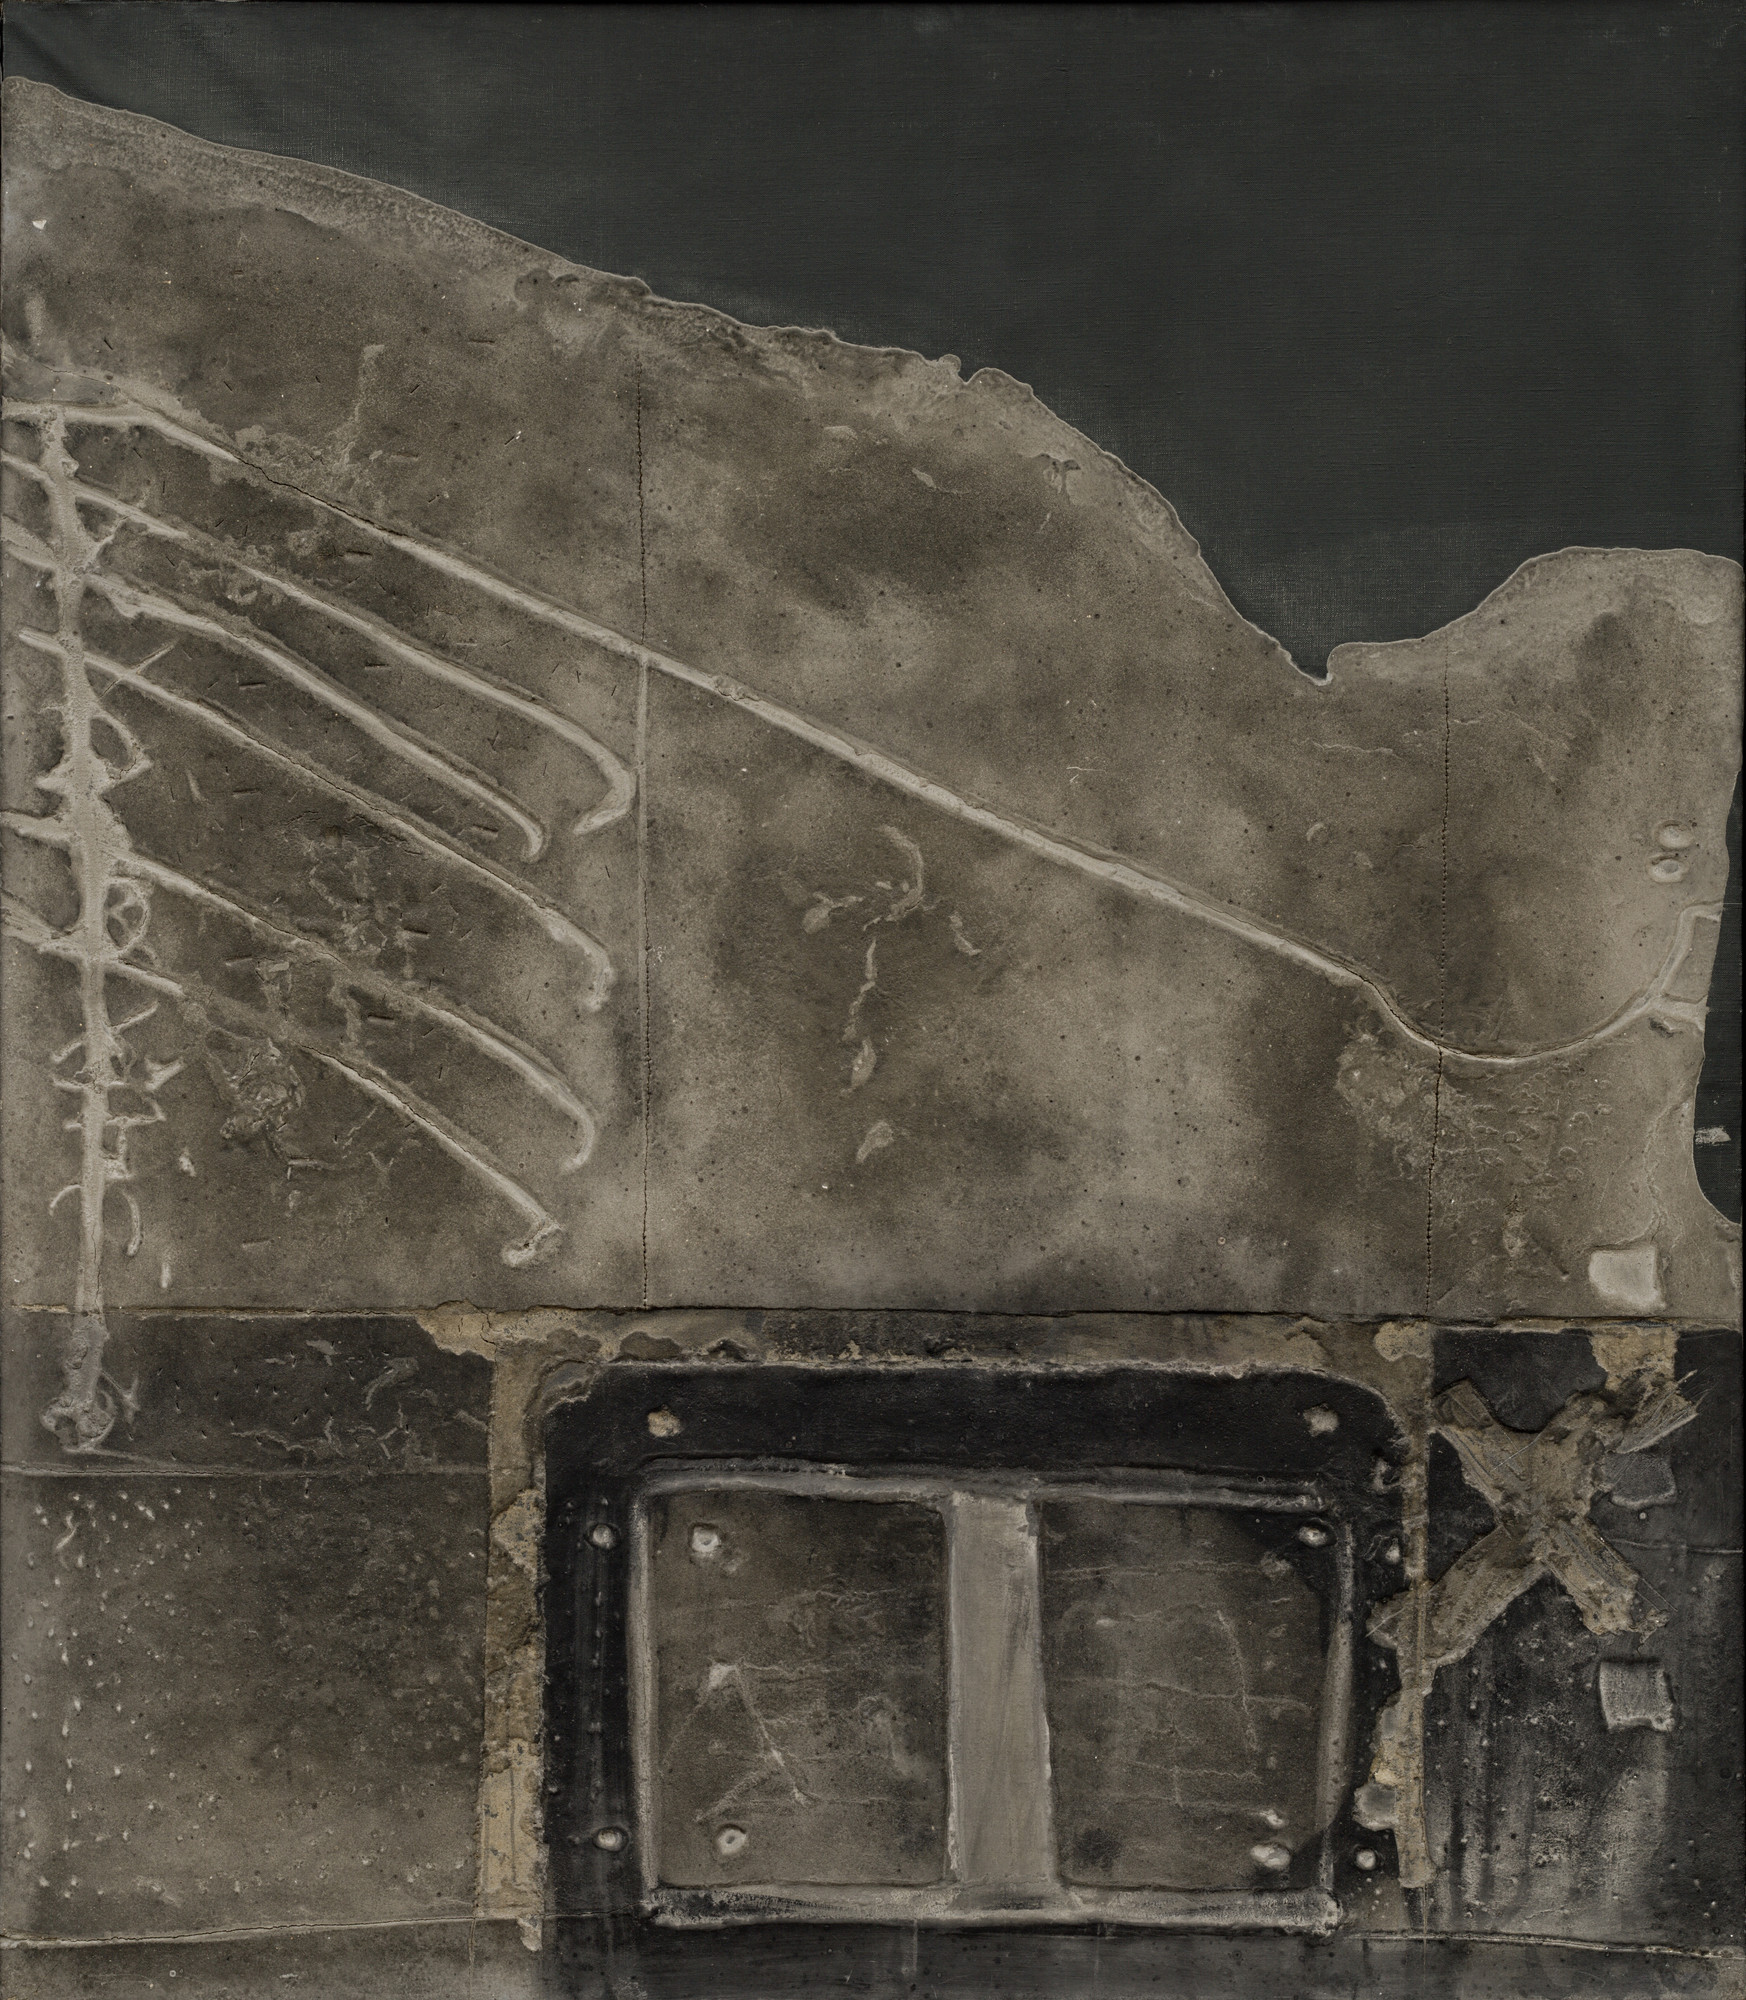 Antoni Tàpies. Gray Relief on Black. 1959